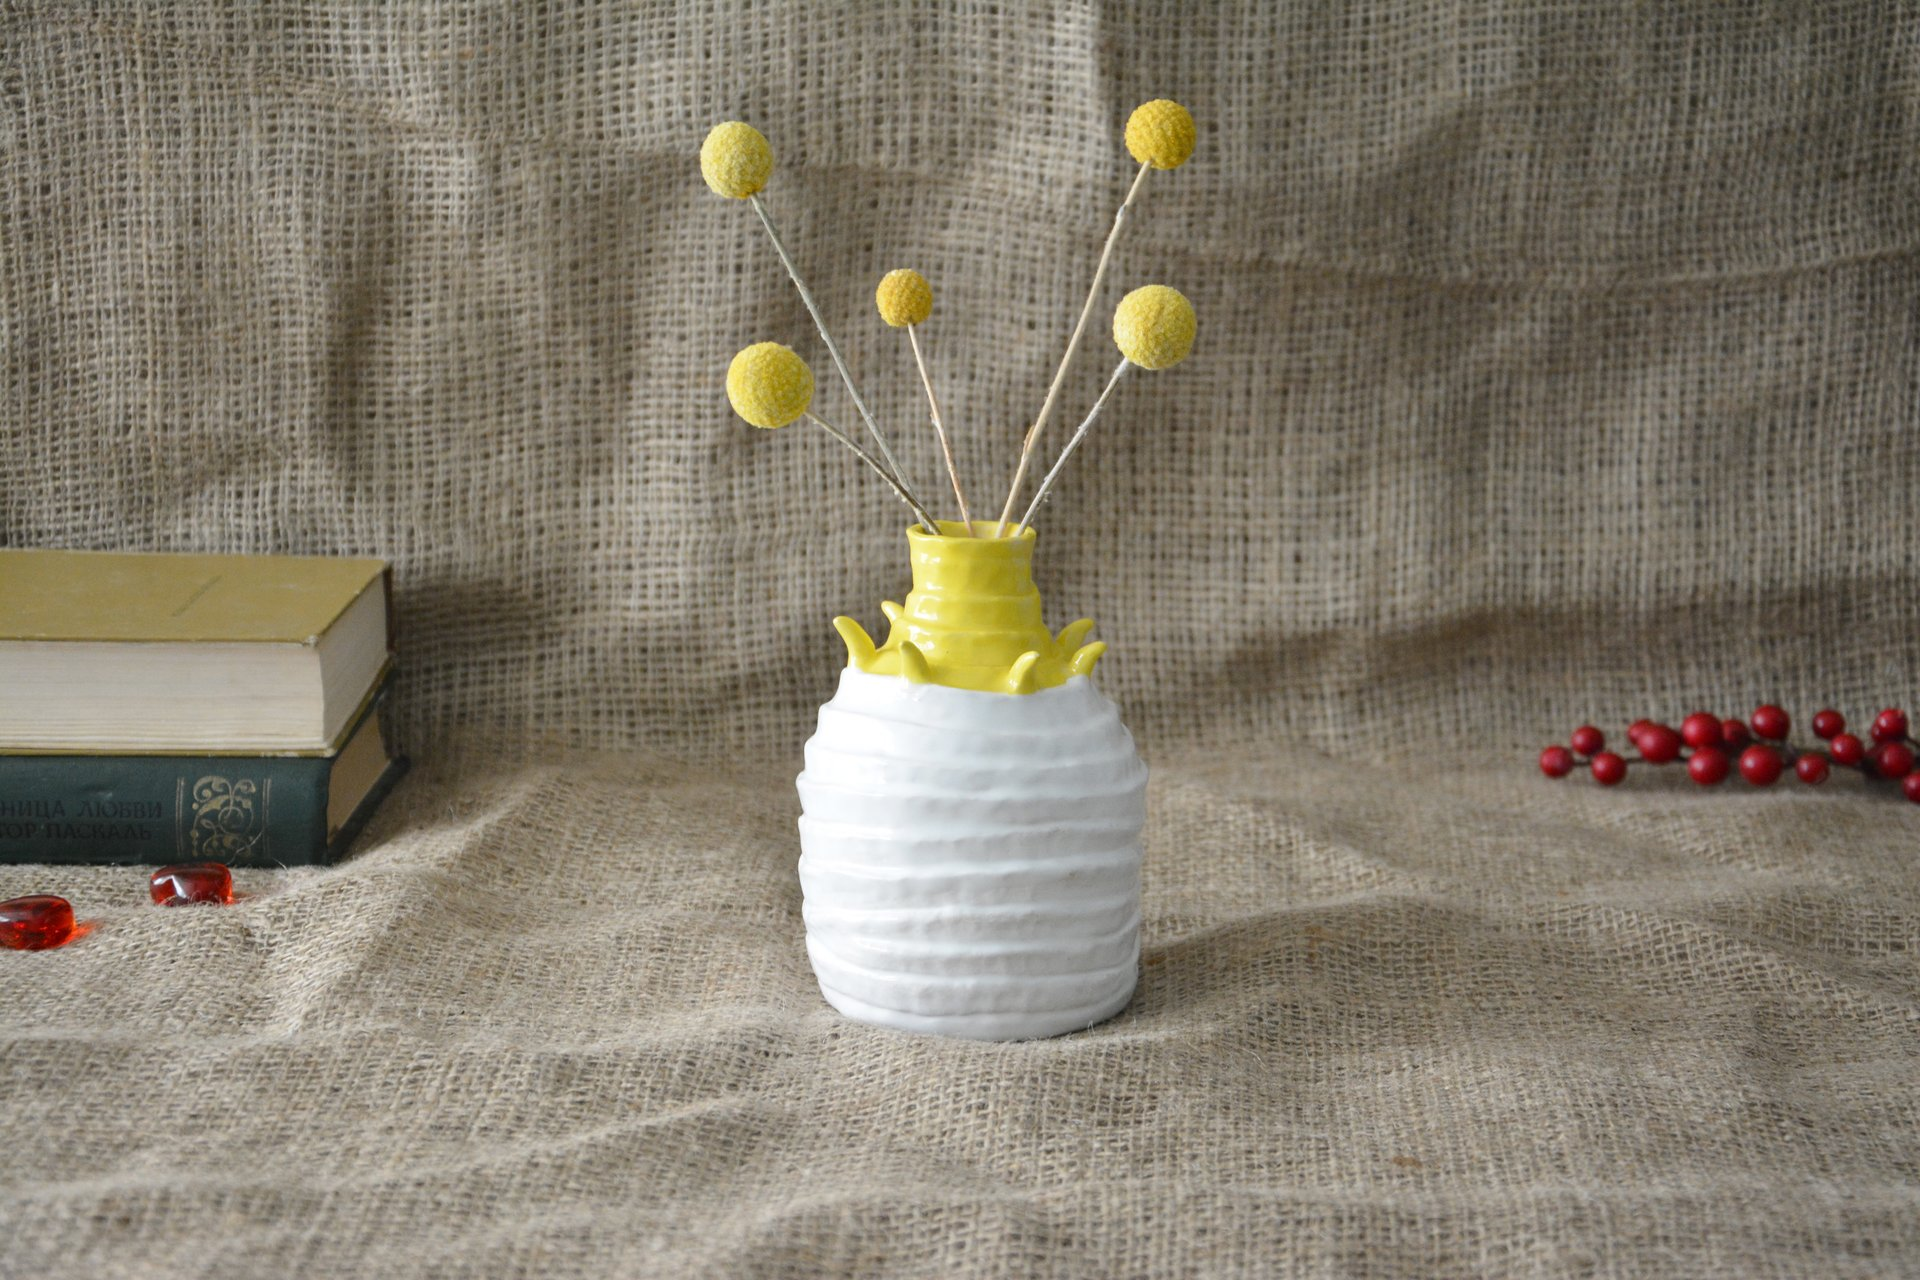 Decorative white-yellow vase Tourniquets, height - 13,5 cm, photo 5 of 7. 605.